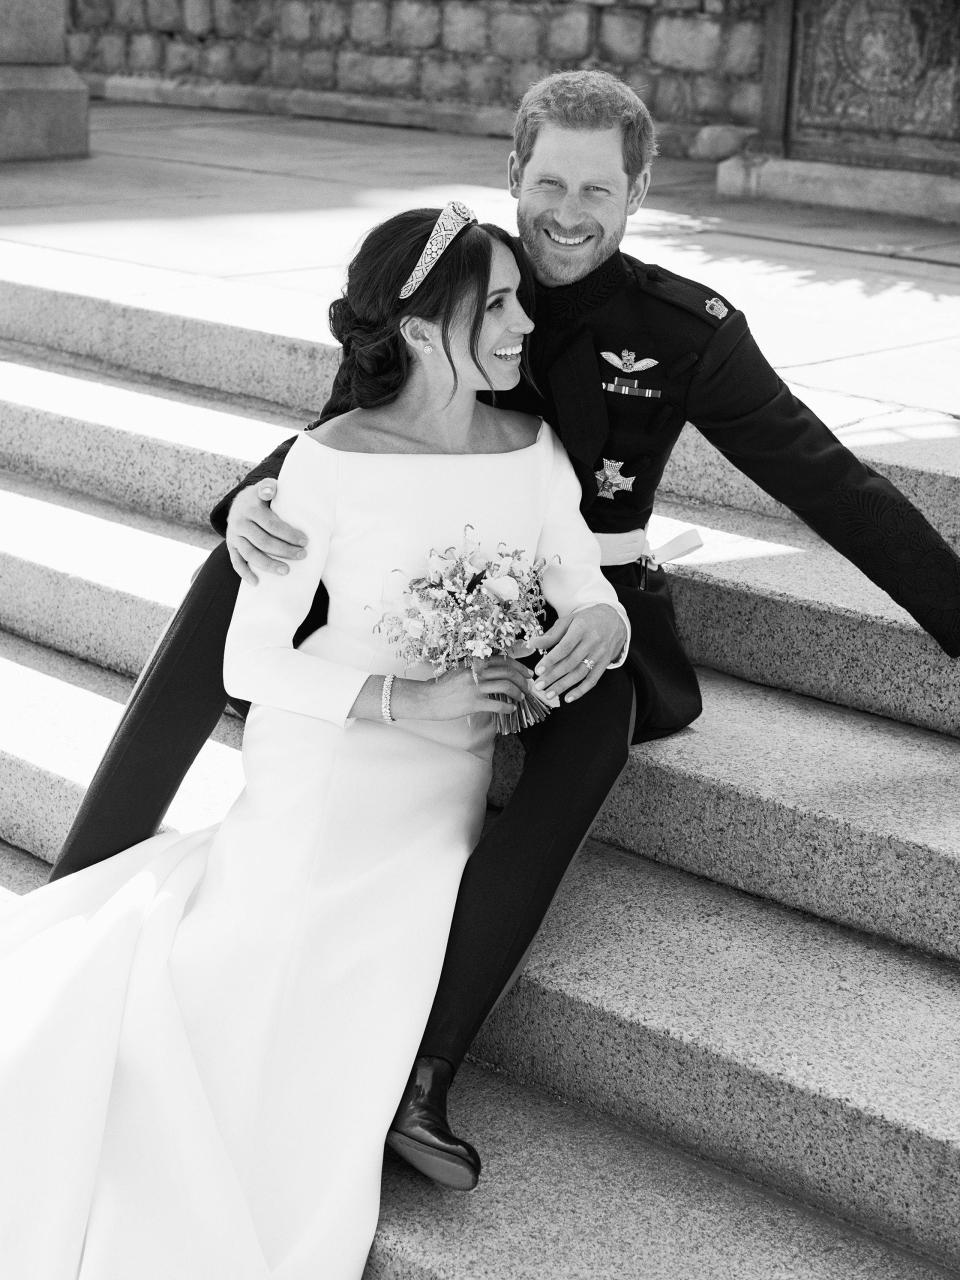 Wedding photos Prince Harry and Meghan Markle